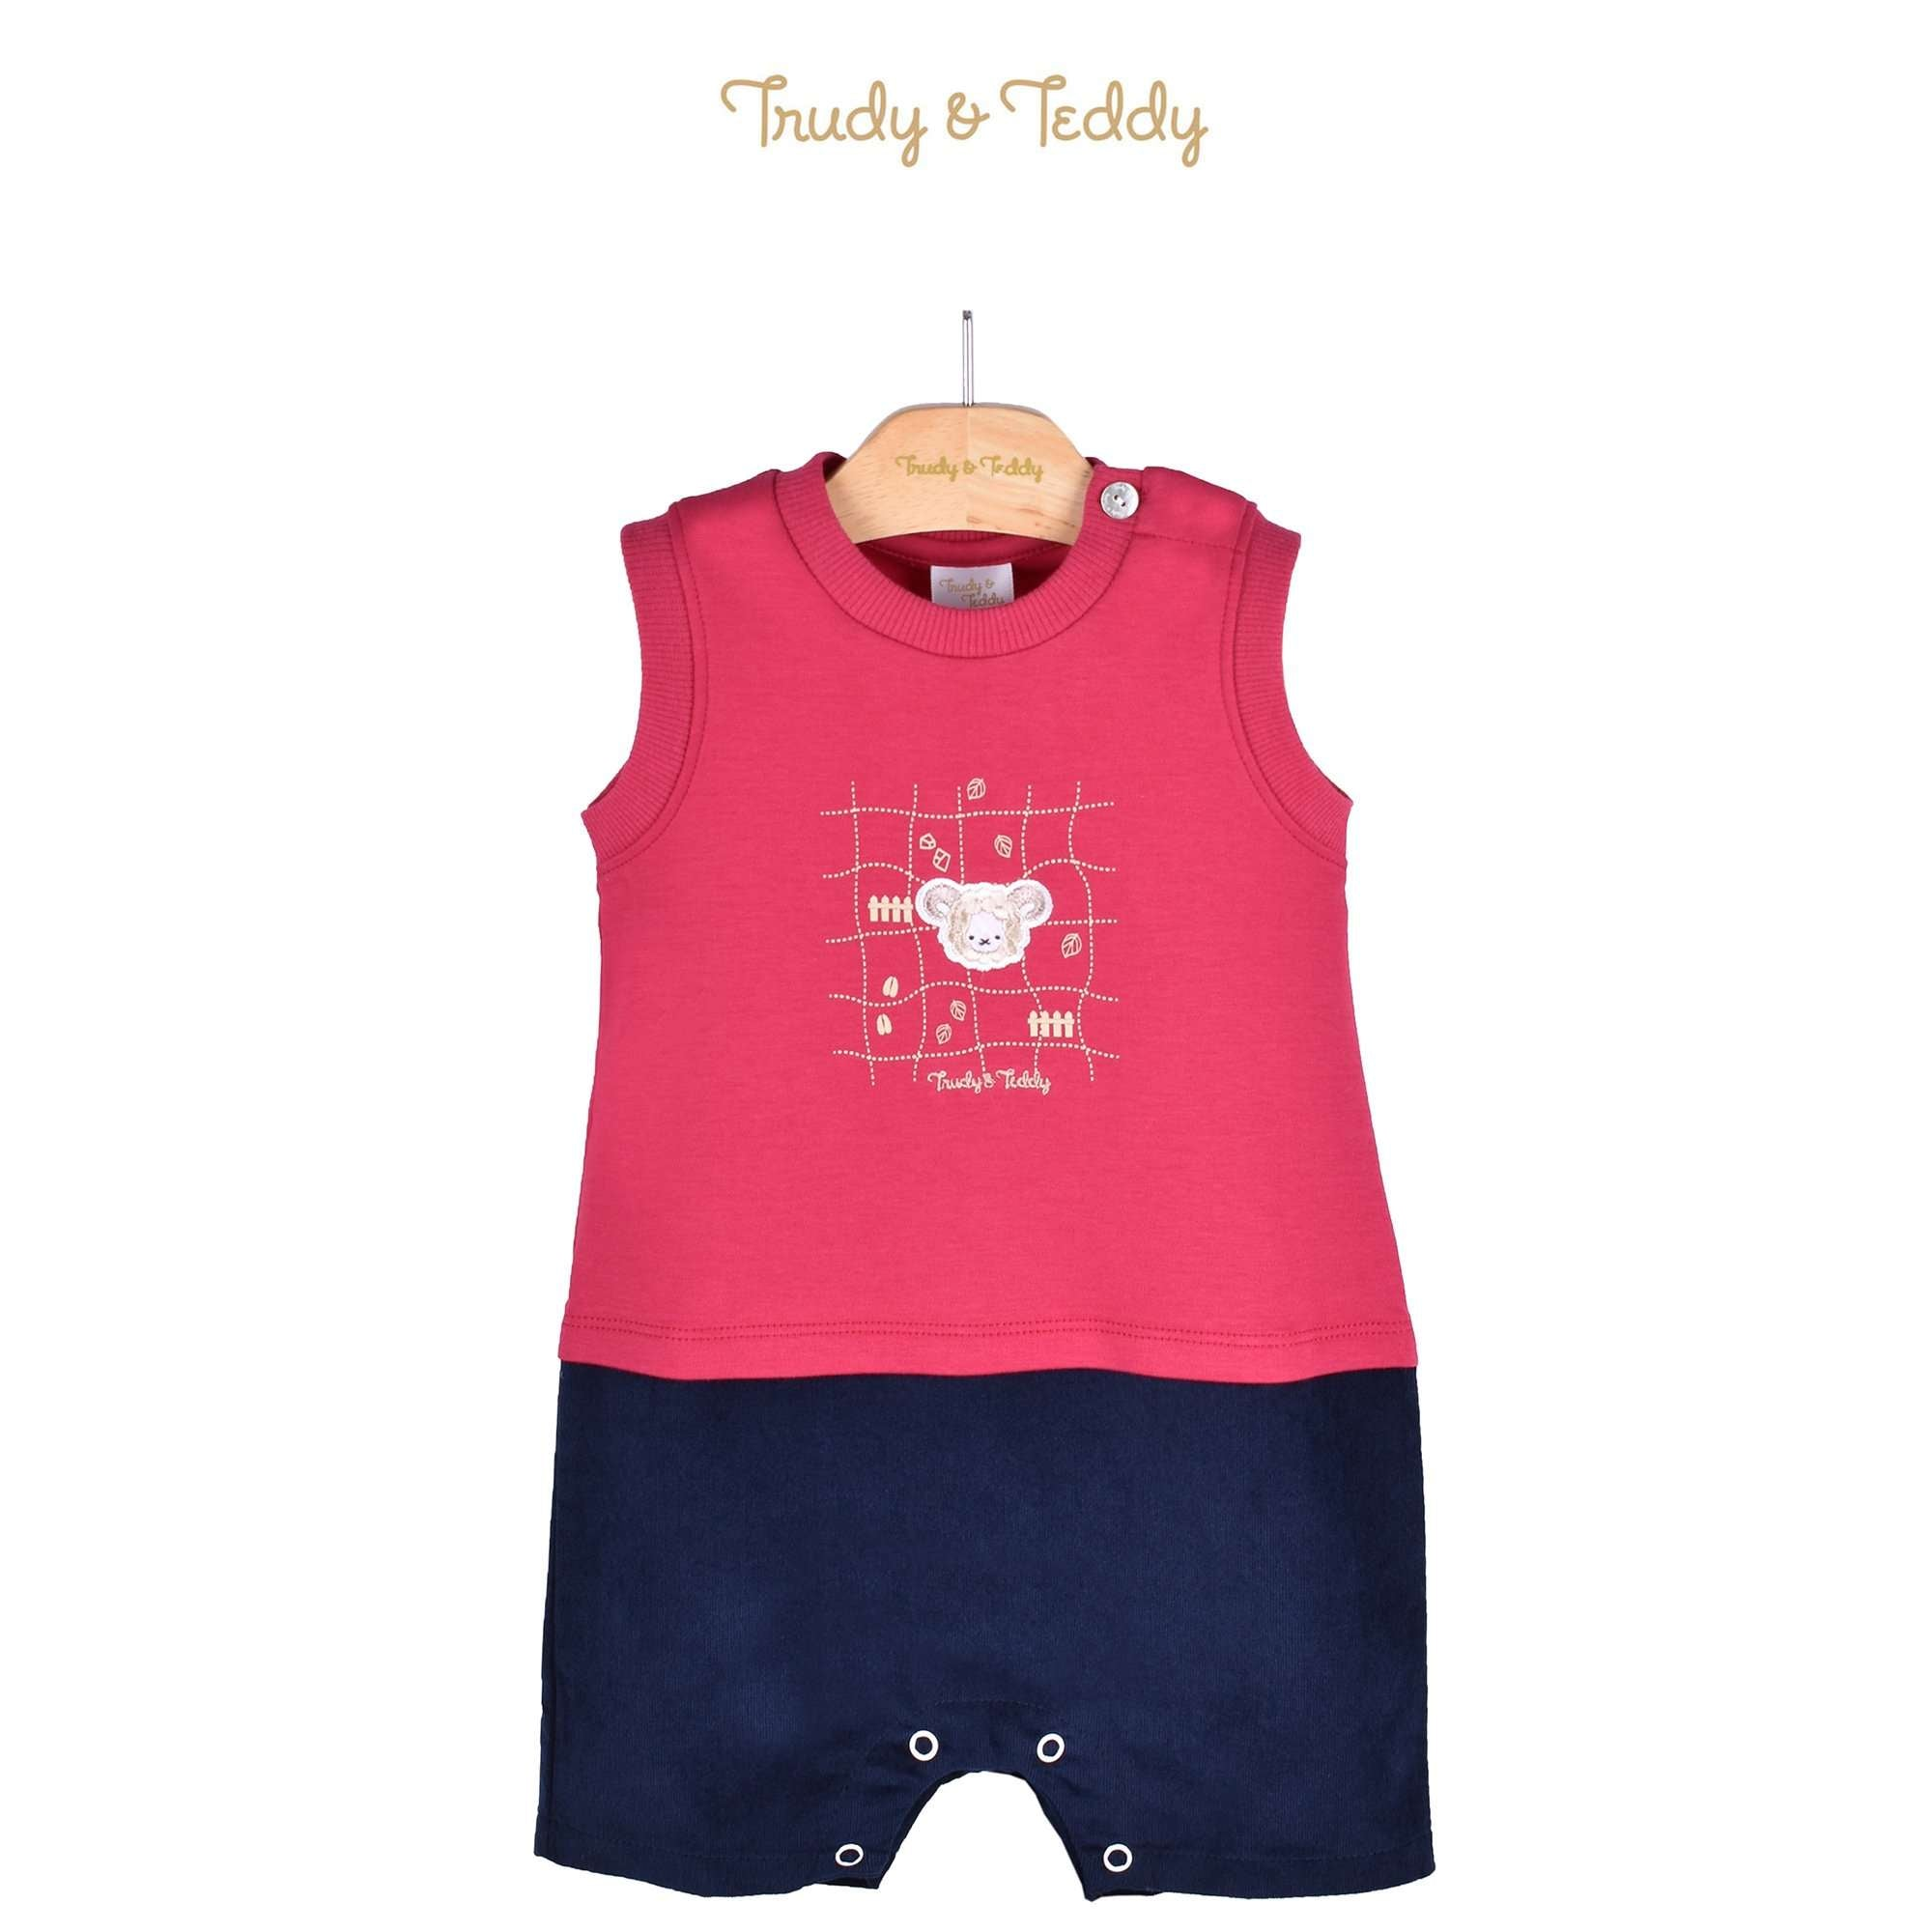 Trudy & Teddy Baby Boy Sleeveless Short Romper 810089-361 : Buy Trudy & Teddy online at CMG.MY